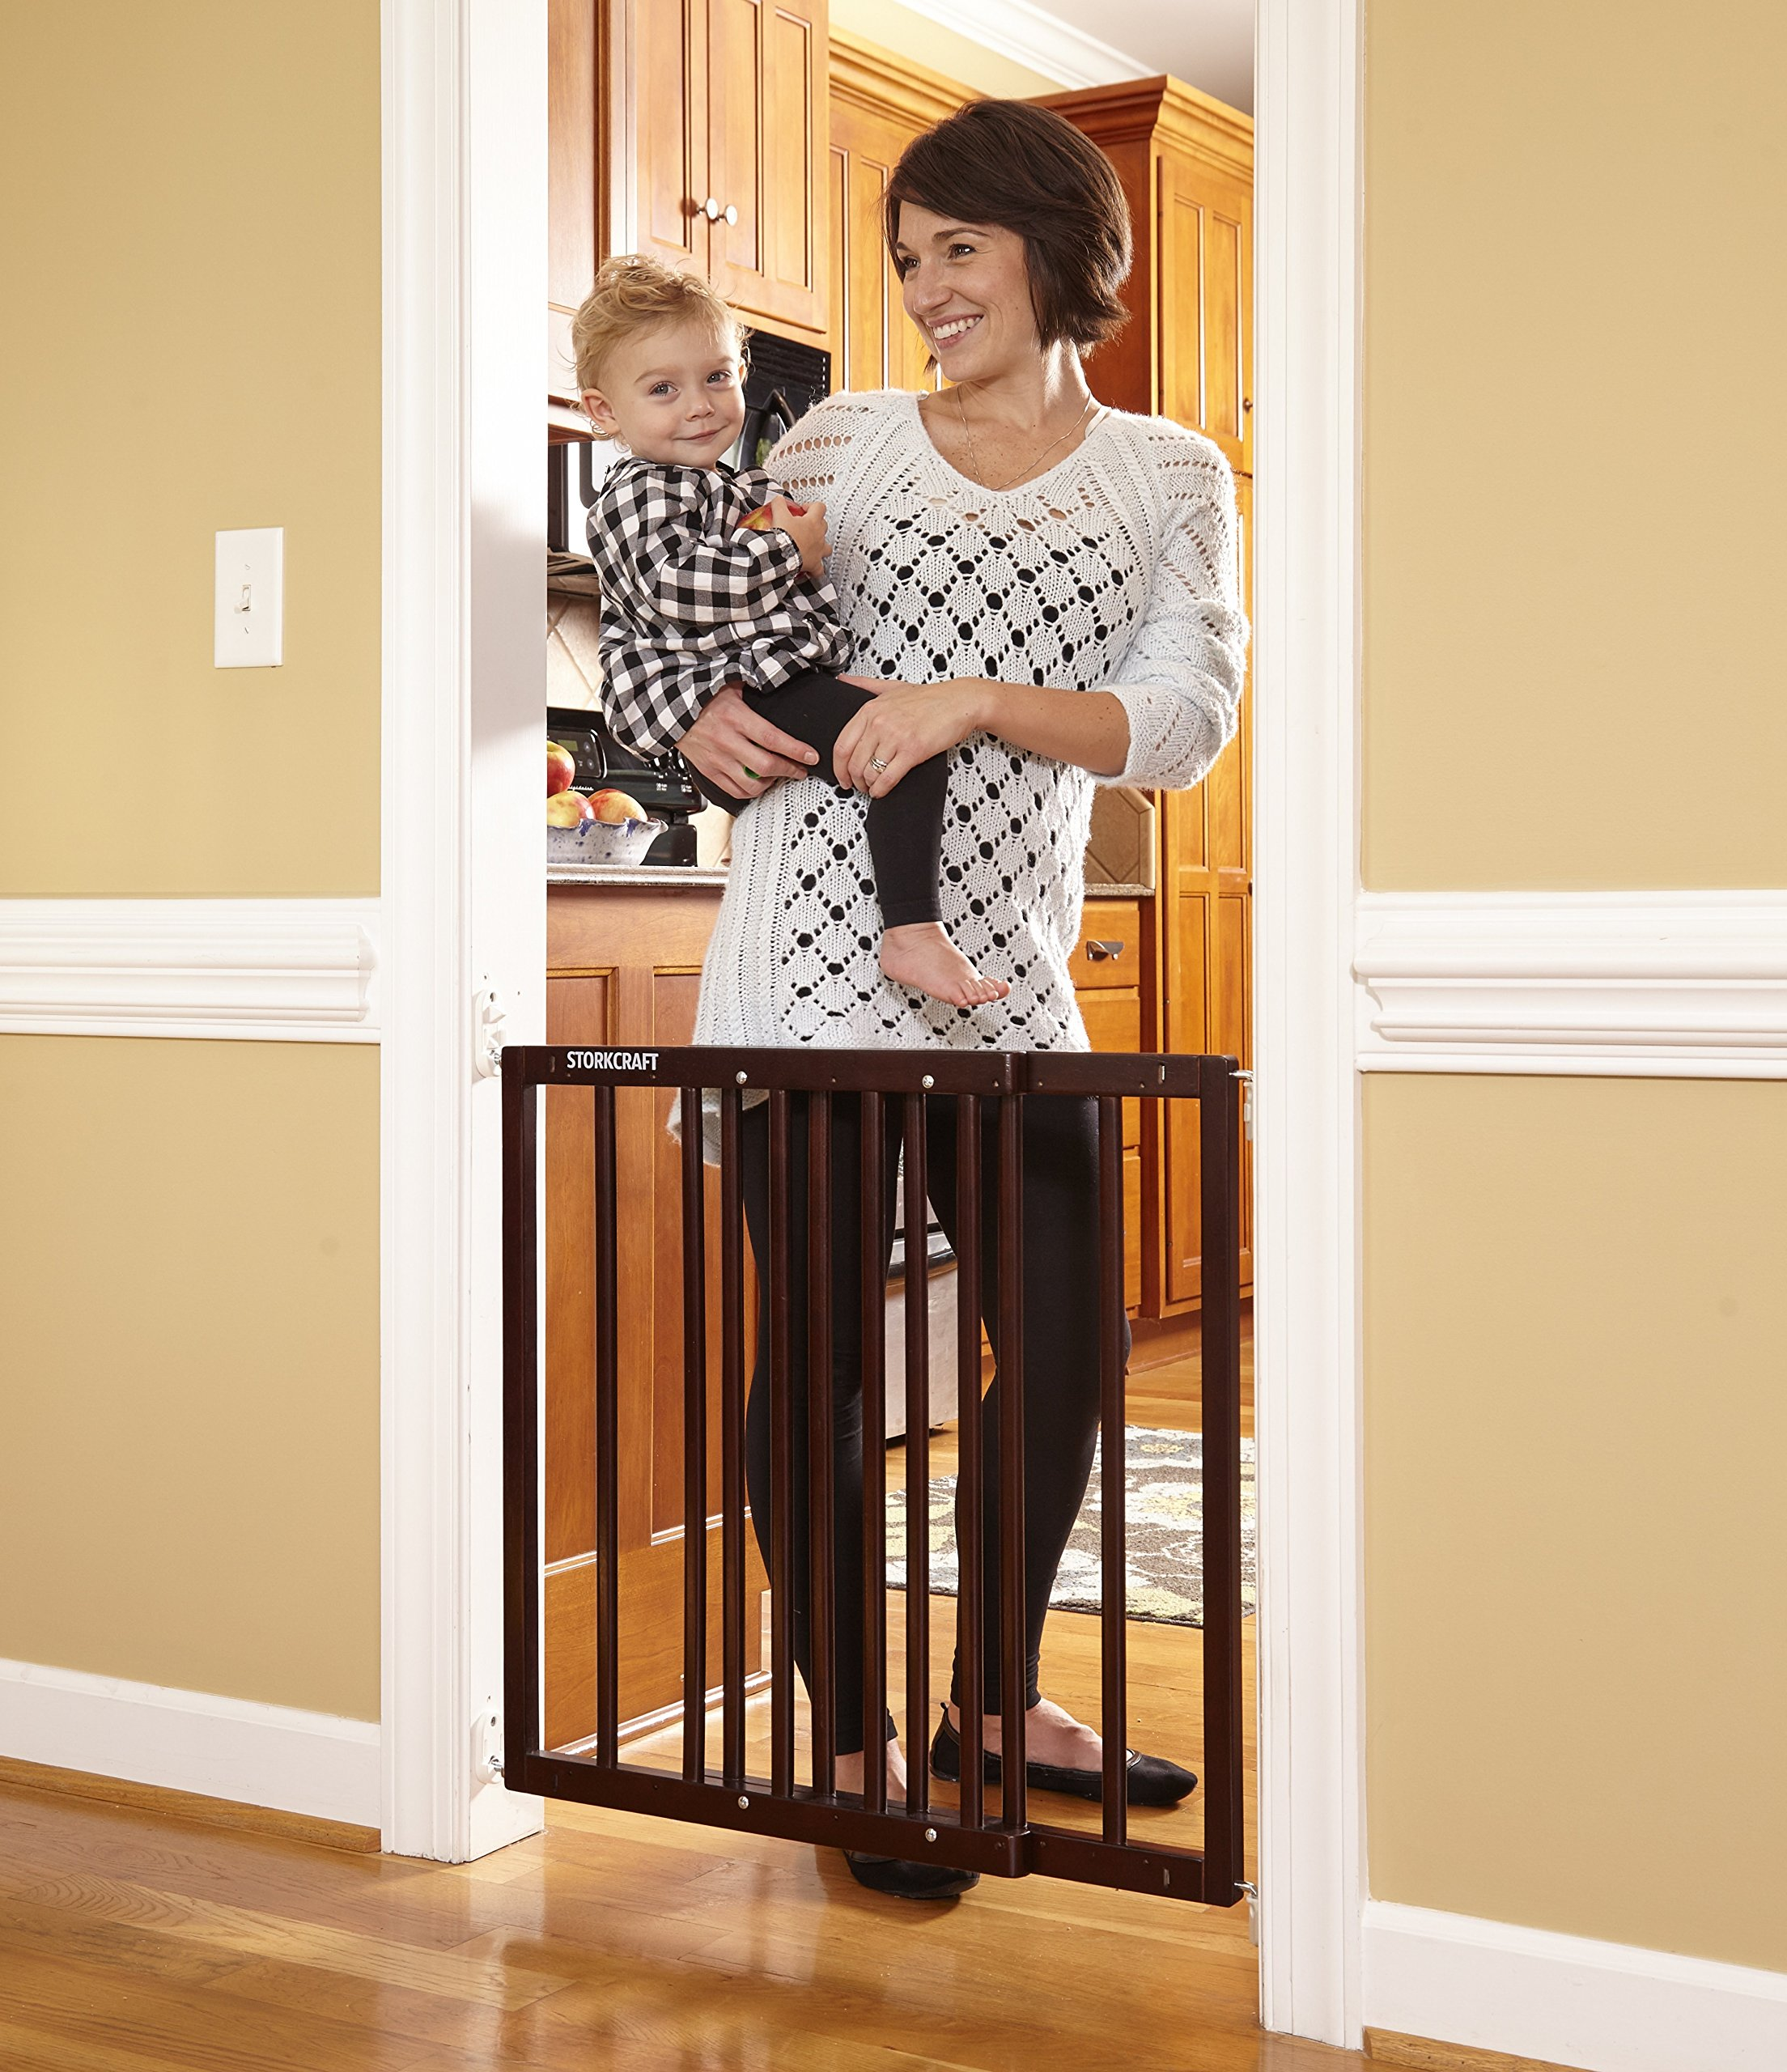 Storkcraft Easy Walk-Thru Wooden Safety Gate, Espresso Adjustable Baby Safety Gate For Doorways and Stairs, Great for Children and Pets by Stork Craft (Image #1)